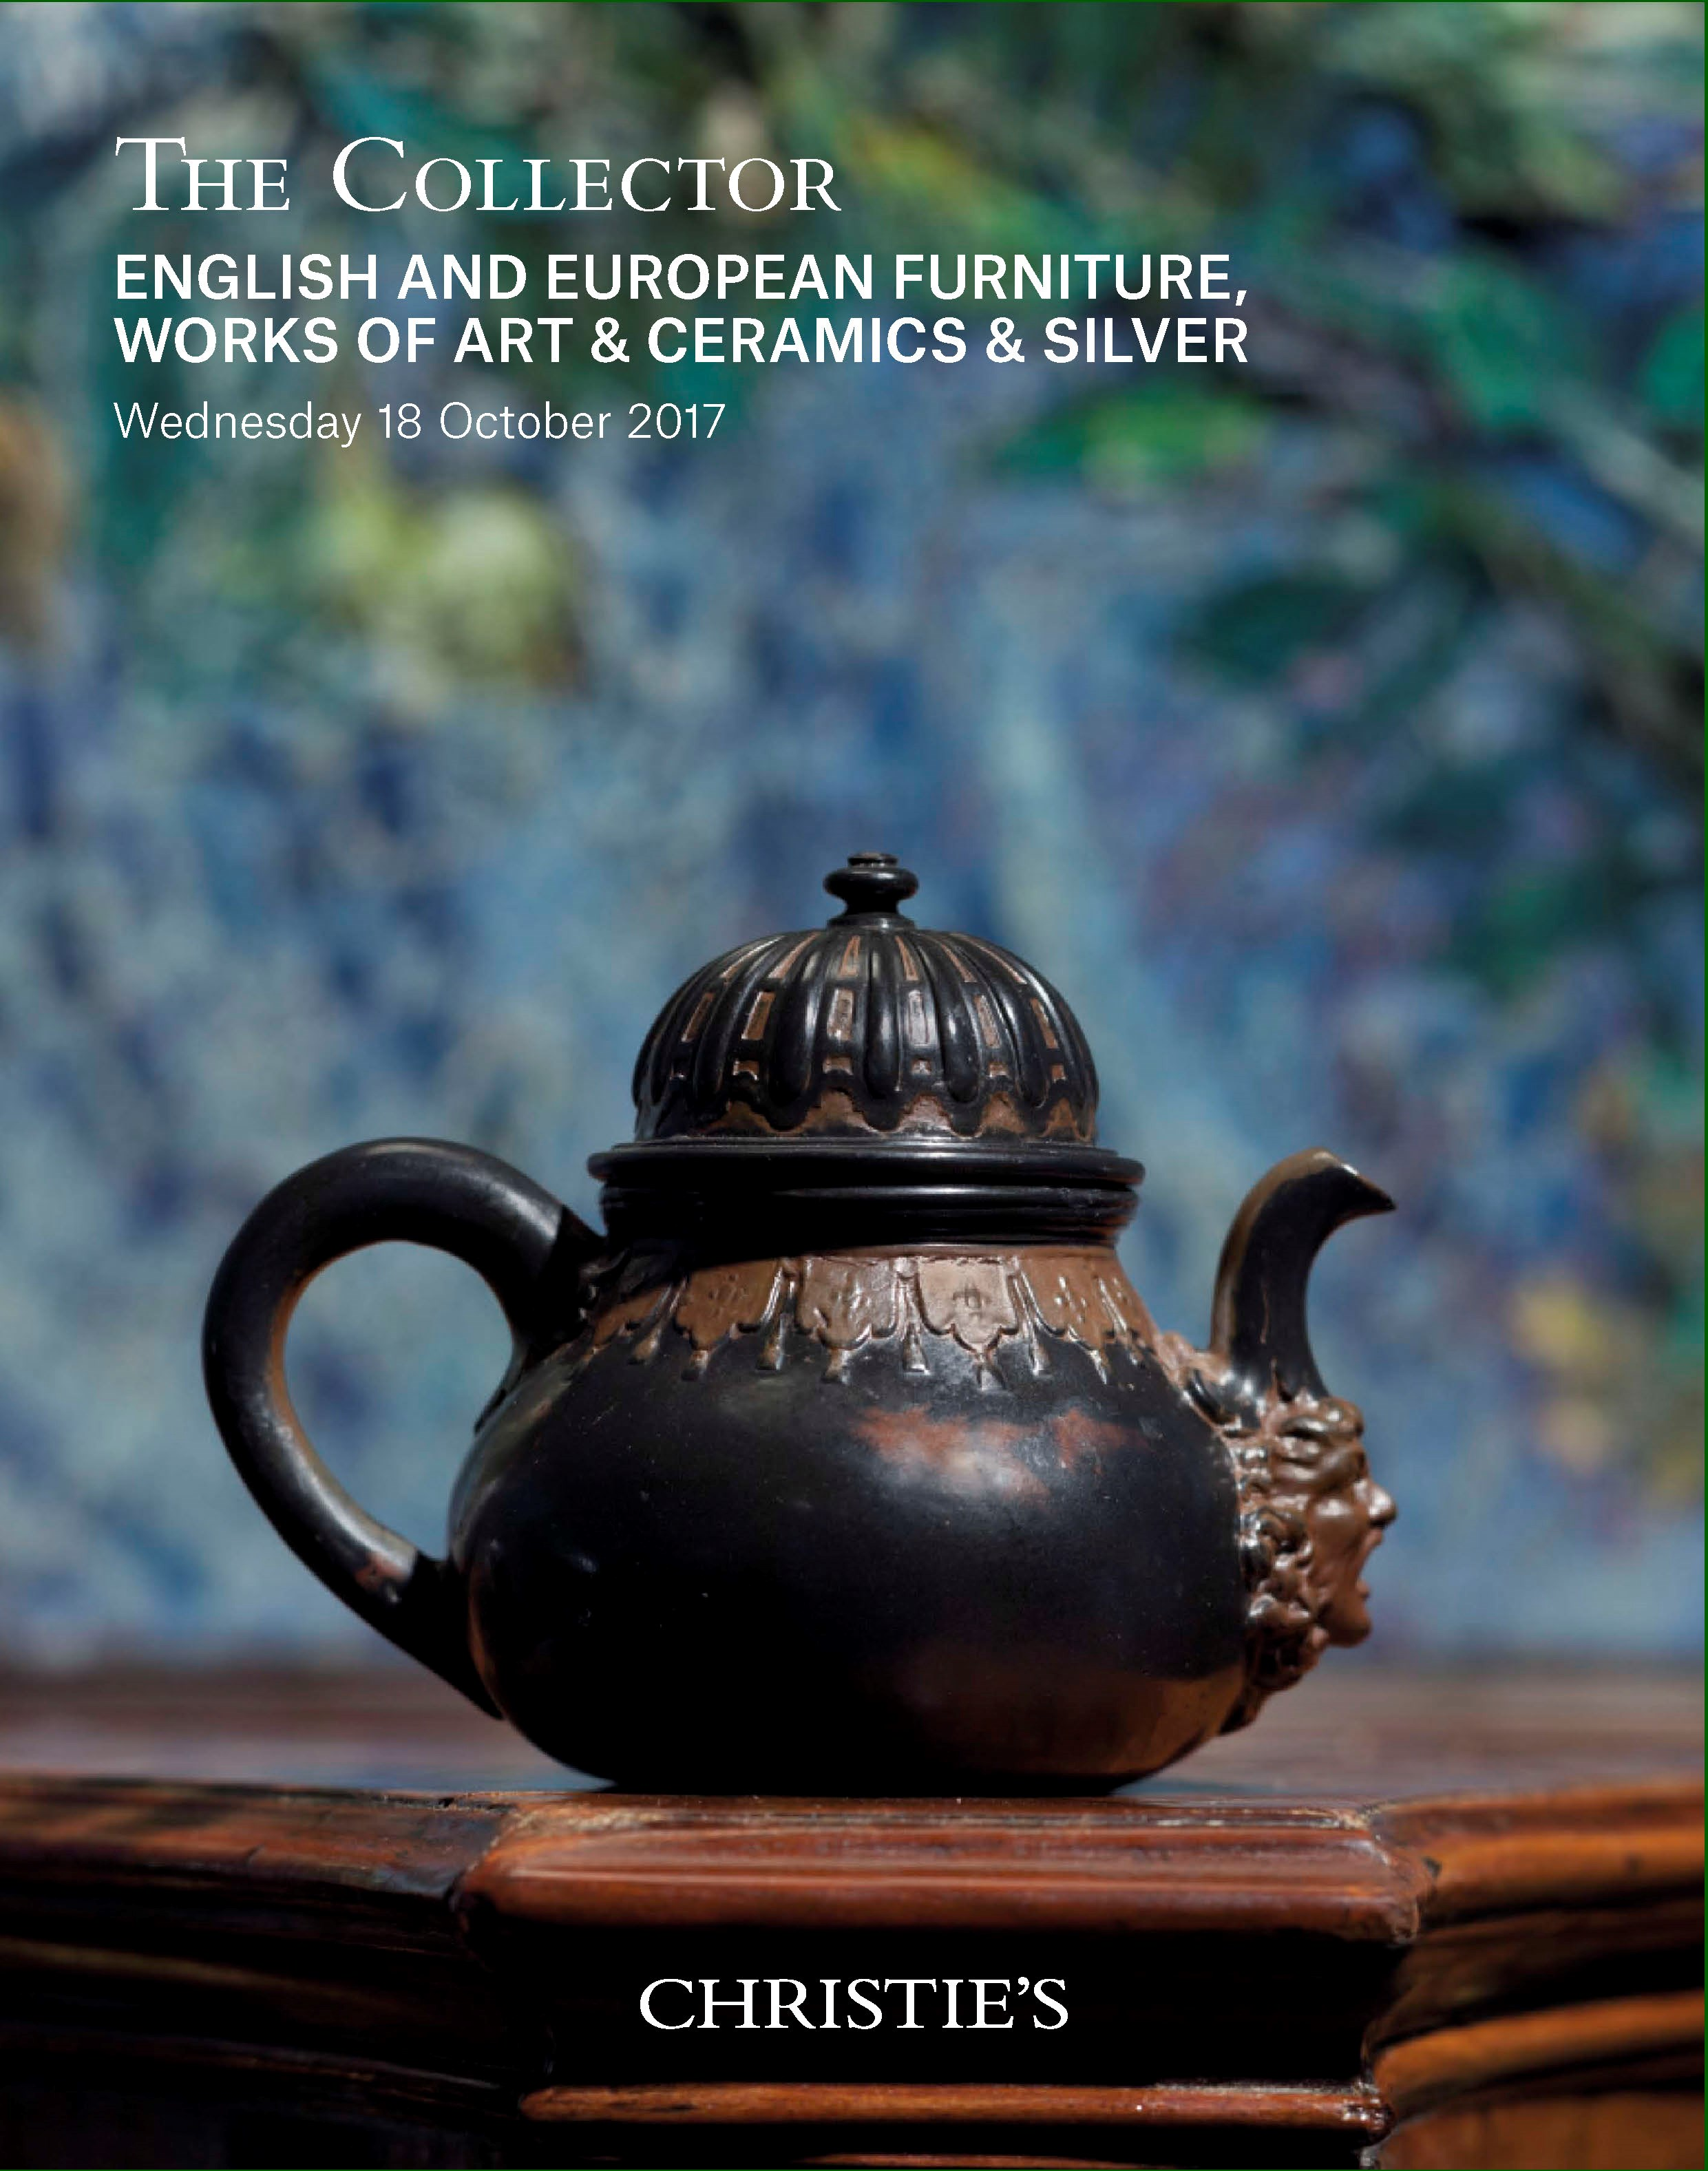 THE COLLECTOR: English and Eur auction at Christies